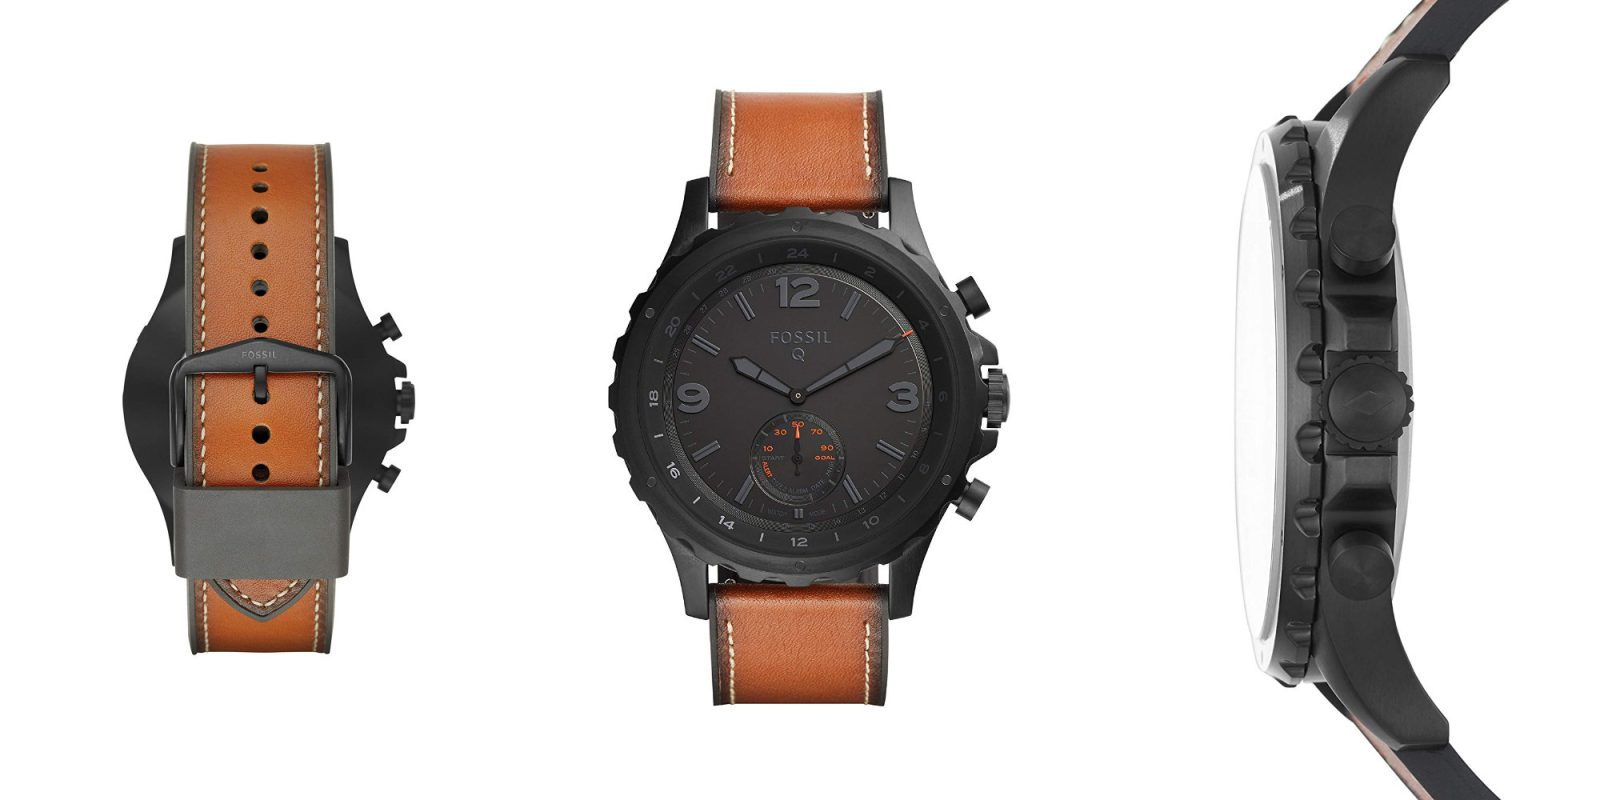 Fossil's Q Nate Hybrid Smartwatch has a 12-month battery: $116 (Reg. $155)